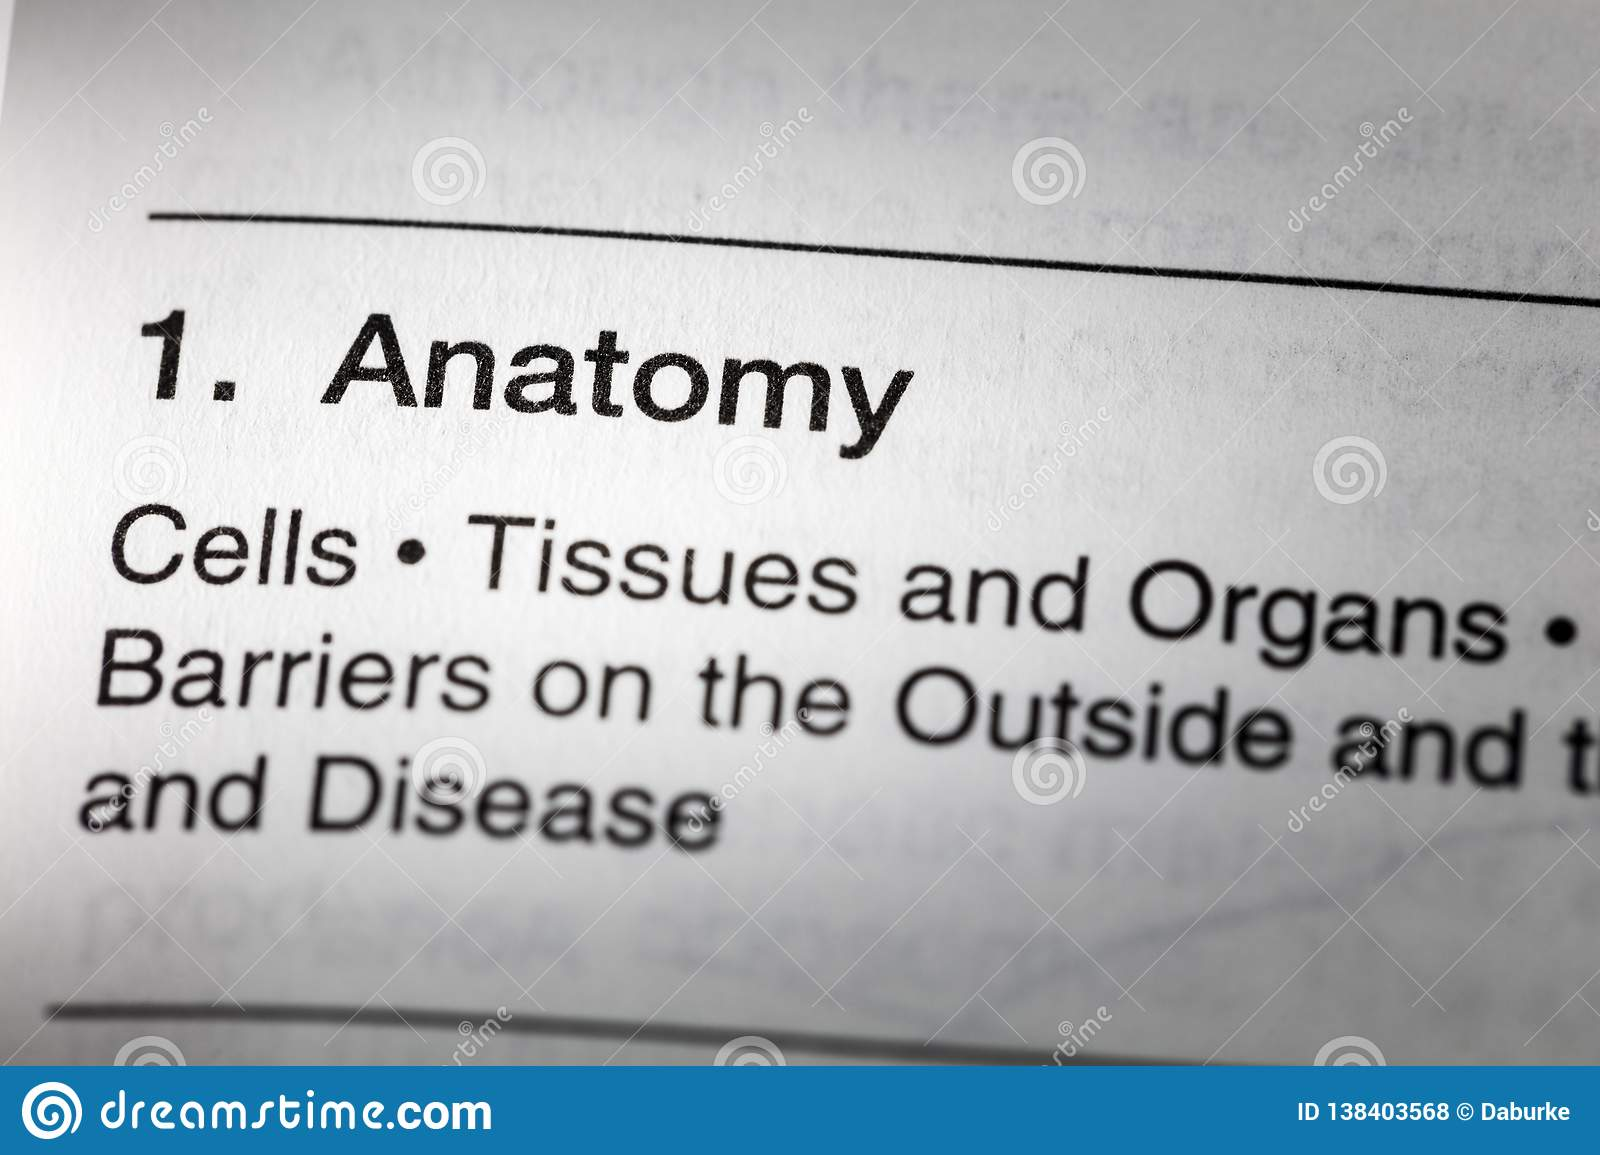 Anatomy Cells Tissues Organs Health Medical Definition Stock Photo